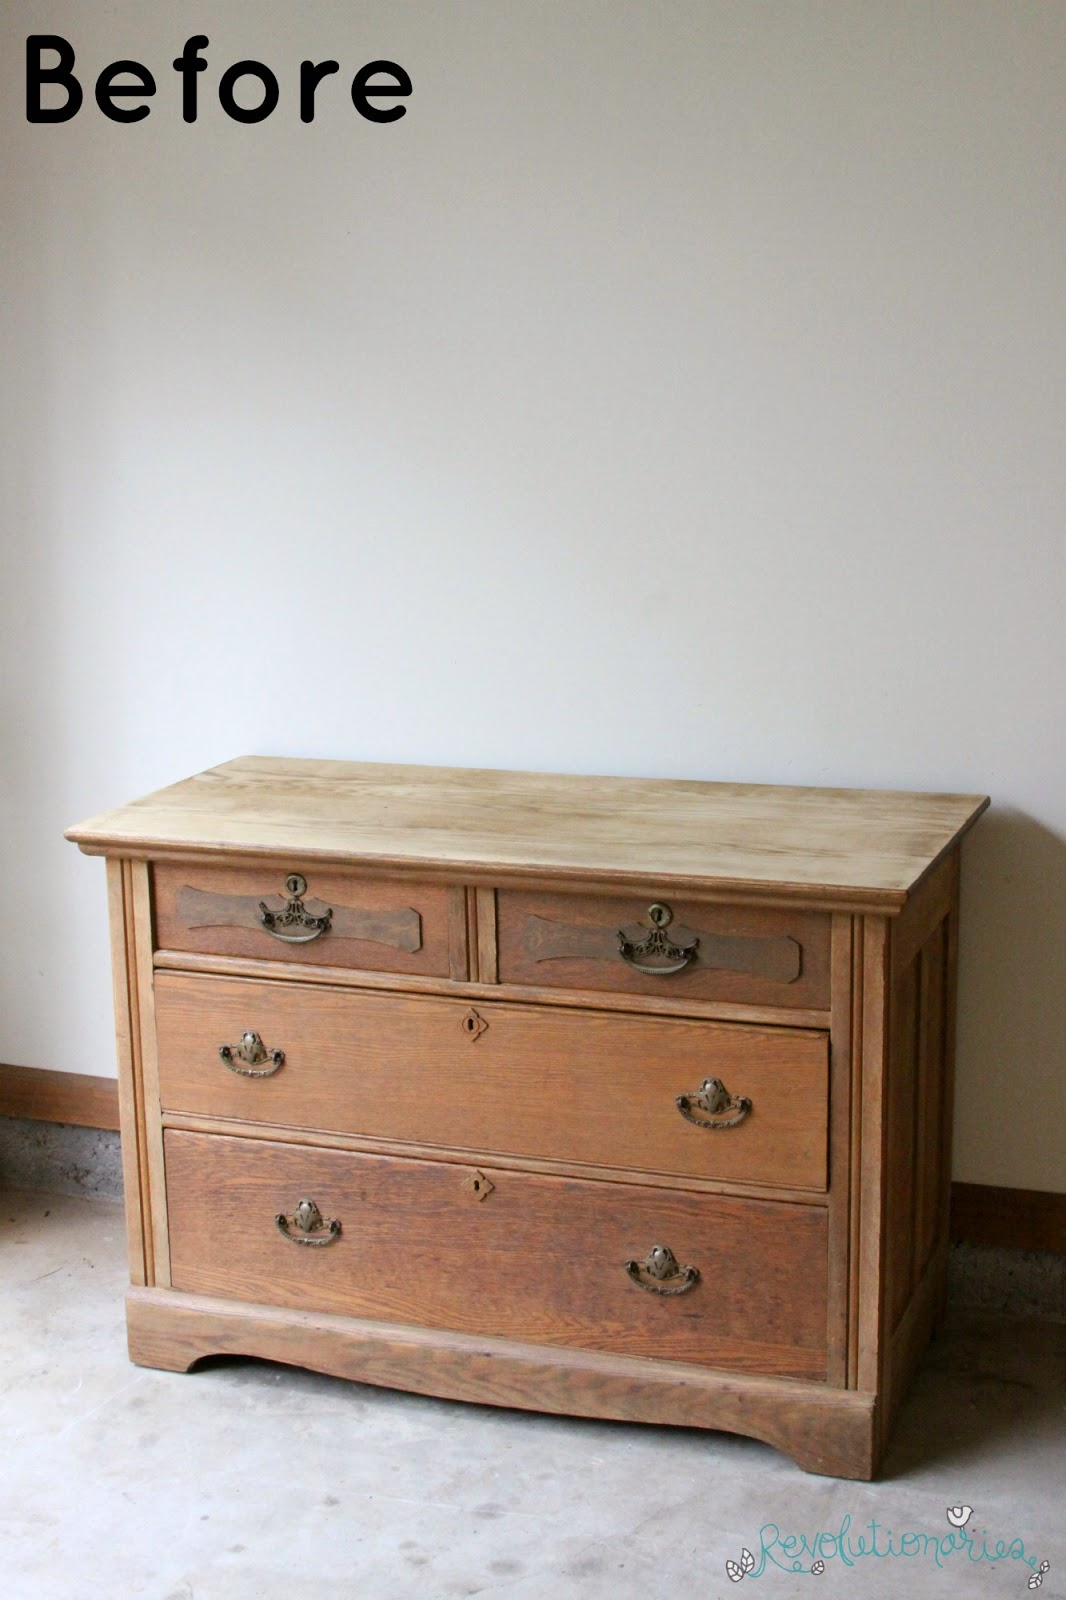 Before and After: The Two Tone Antique Dresser!